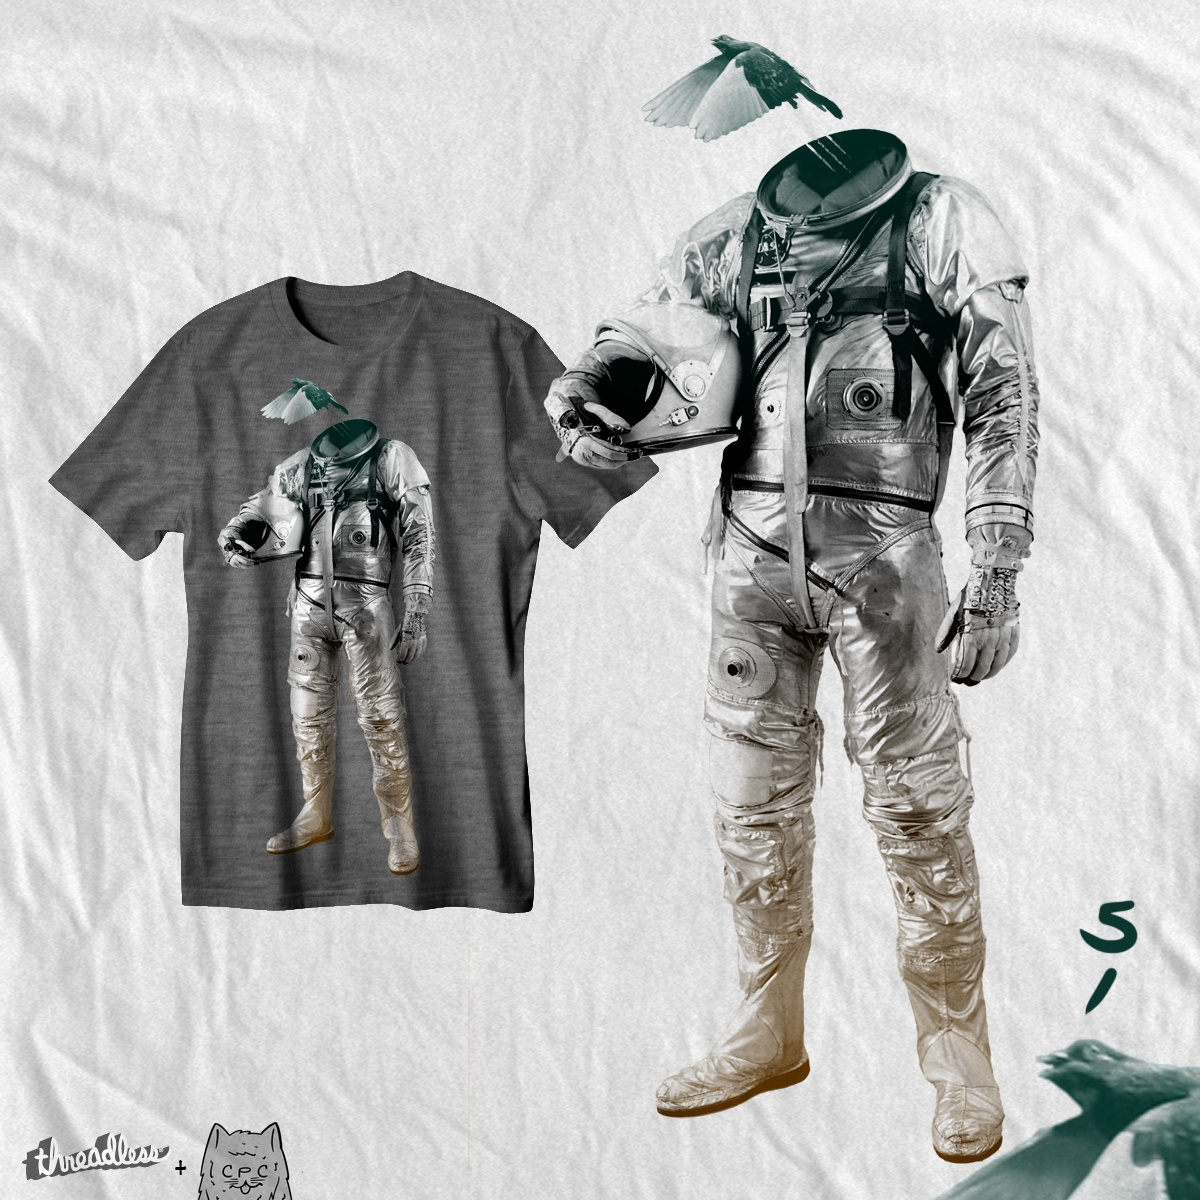 fly, a cool t-shirt design